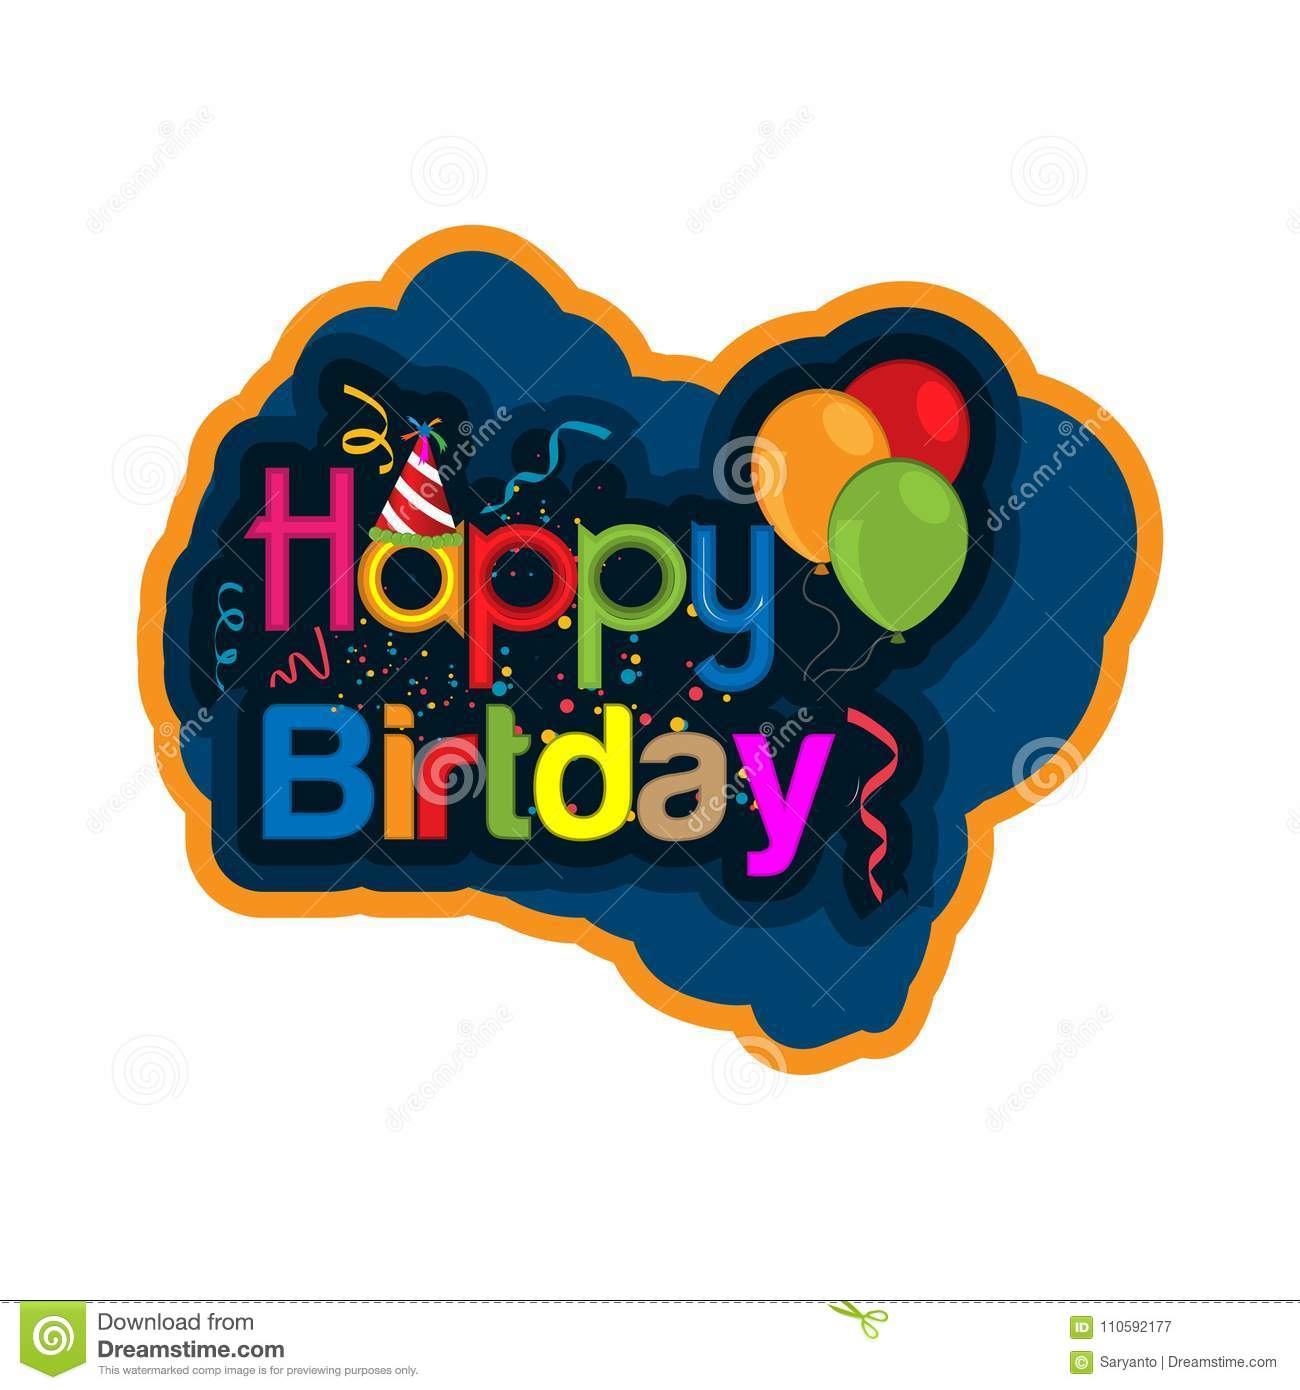 Happy birthday vector design with abstract background